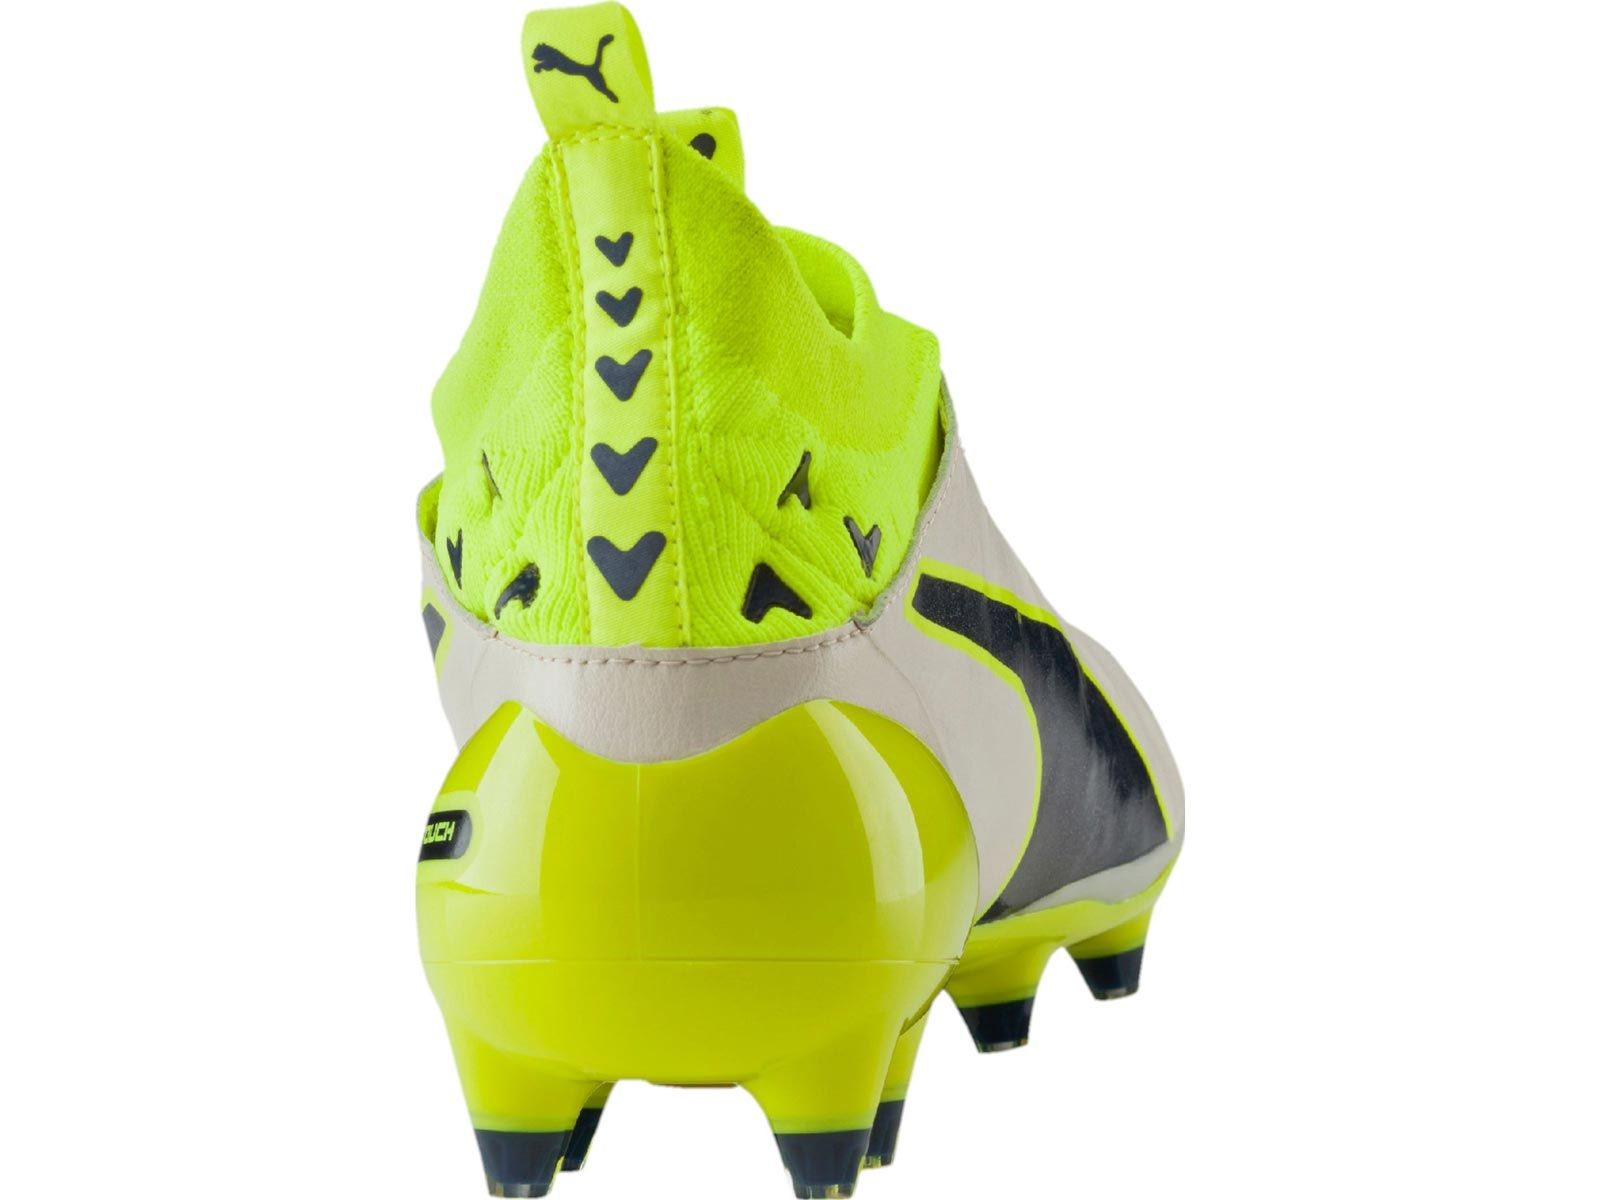 The white Puma evoTOUCH 2016-2017 Football Boots boast an outstanding design.